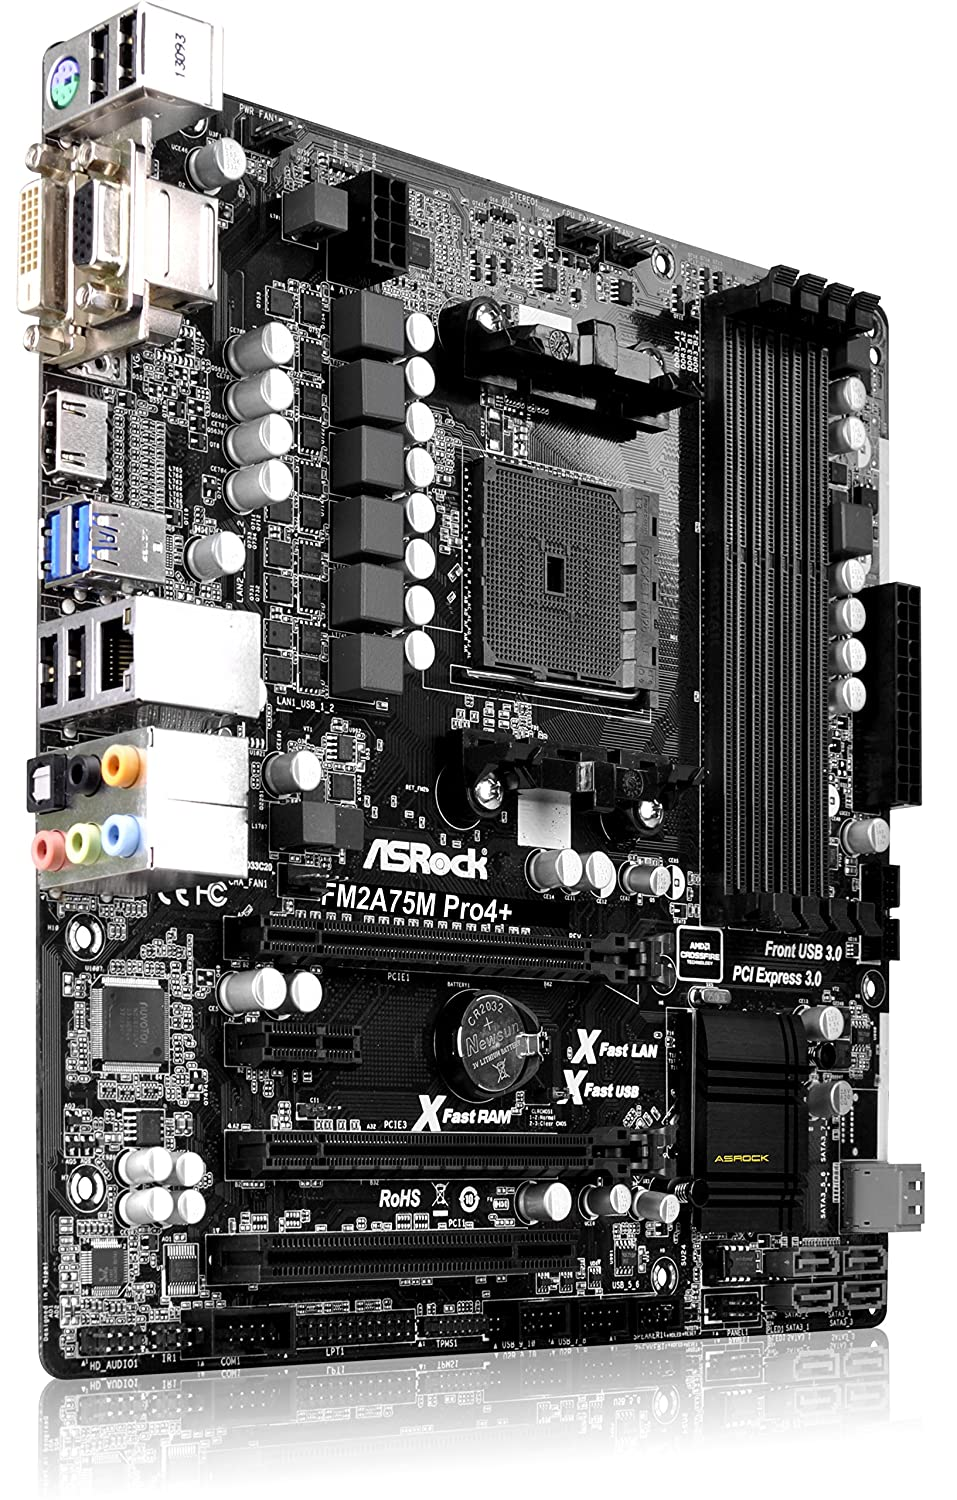 ASRock FM2A75M Pro4+ AMD All-in-One Drivers for Windows Download